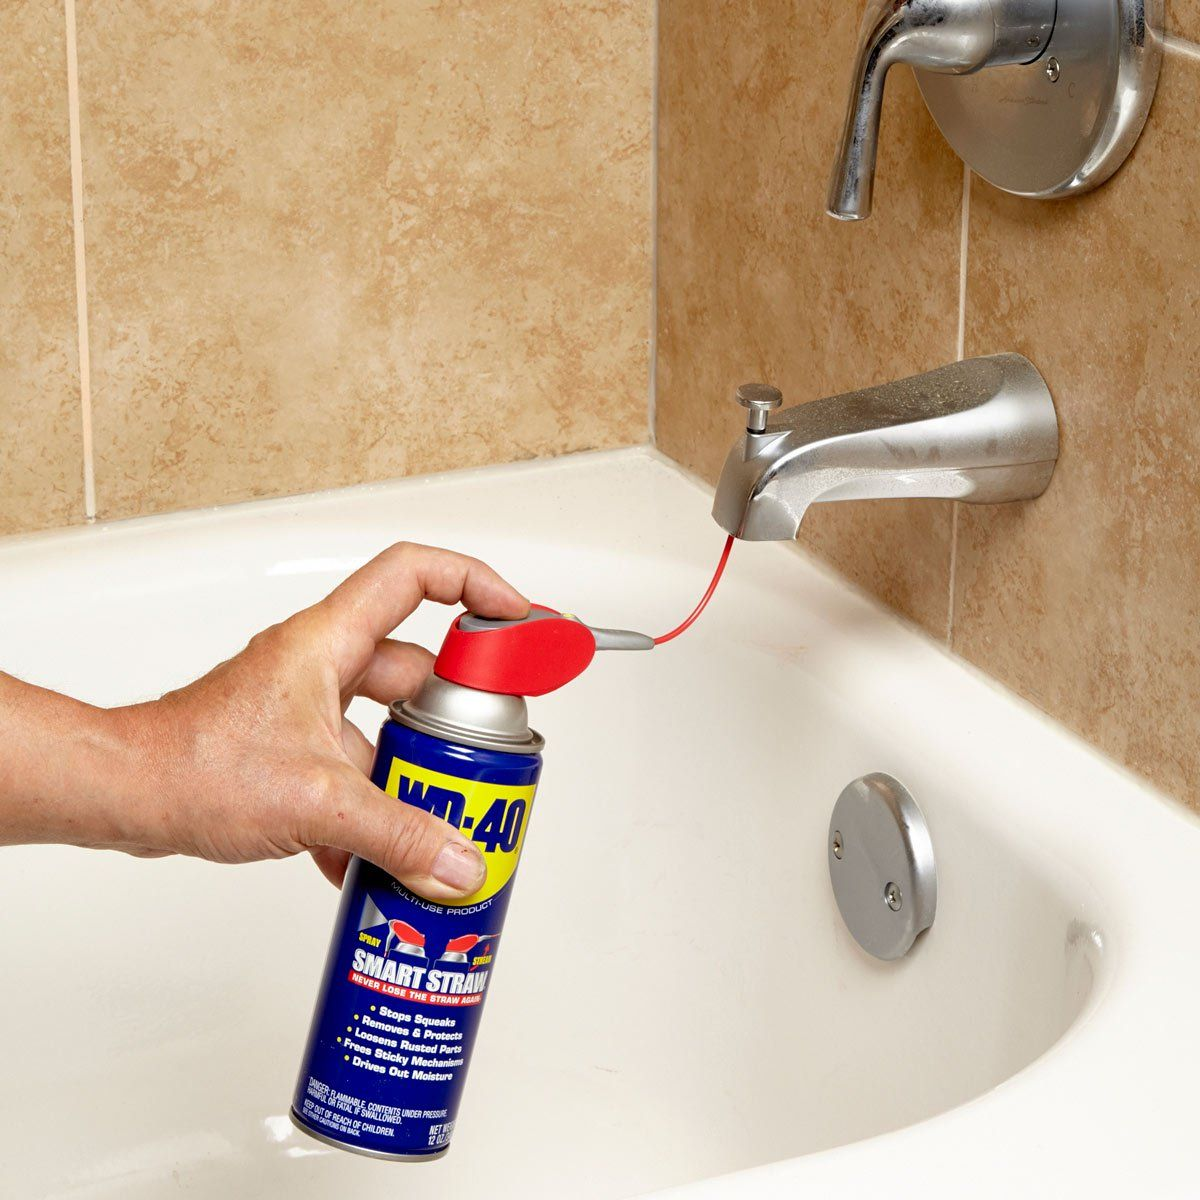 How to Fix a Sticking Tub Spout Diverter Cleaning hacks